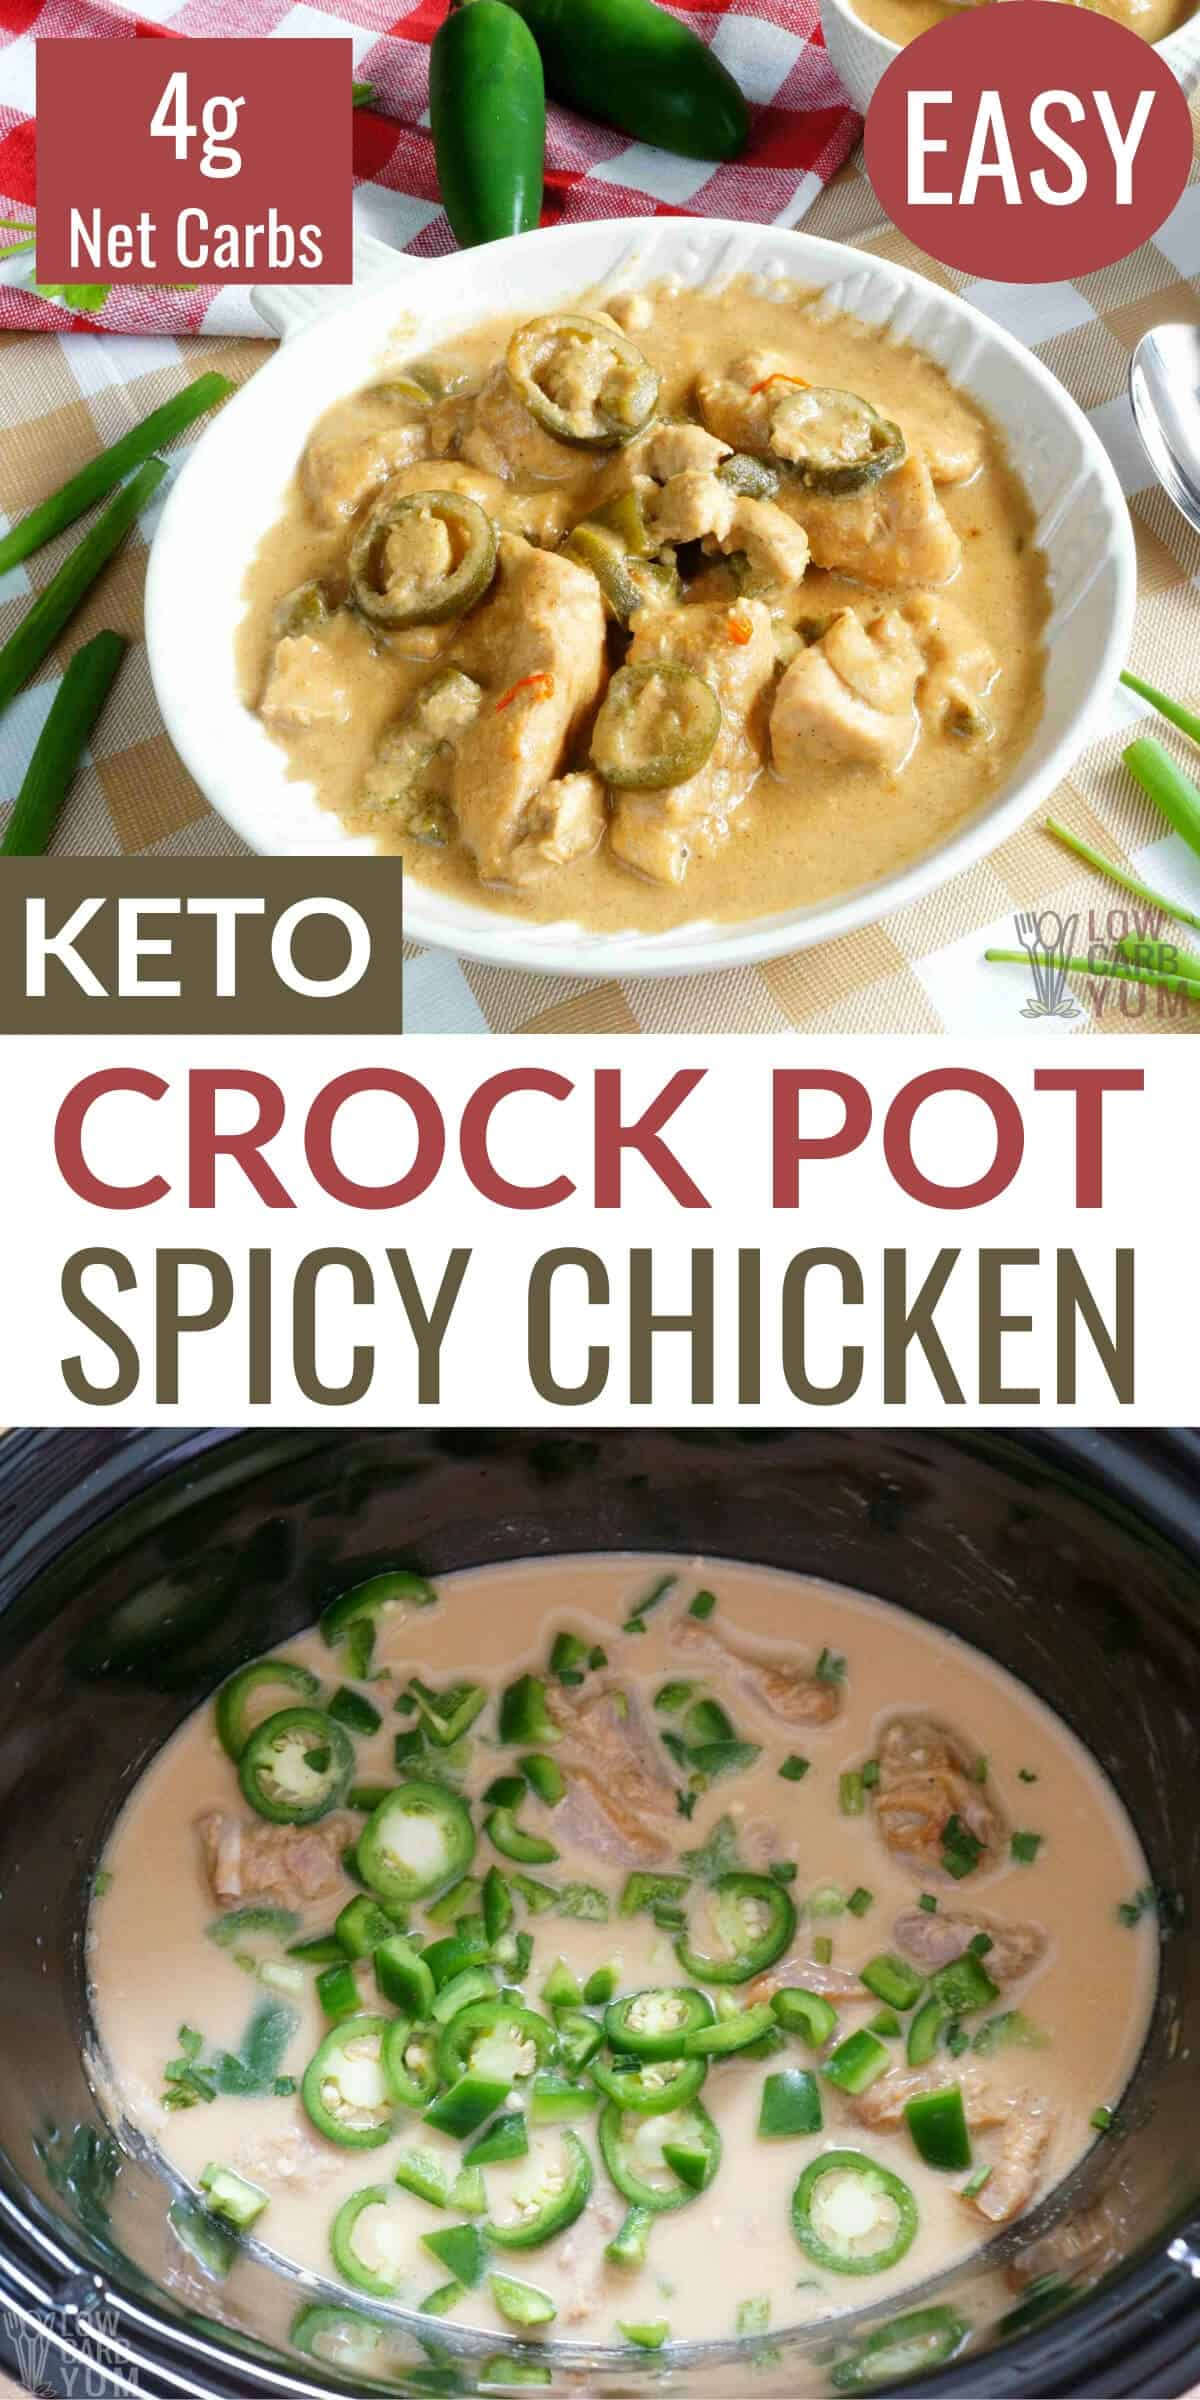 spicy crock pot chicken recipe